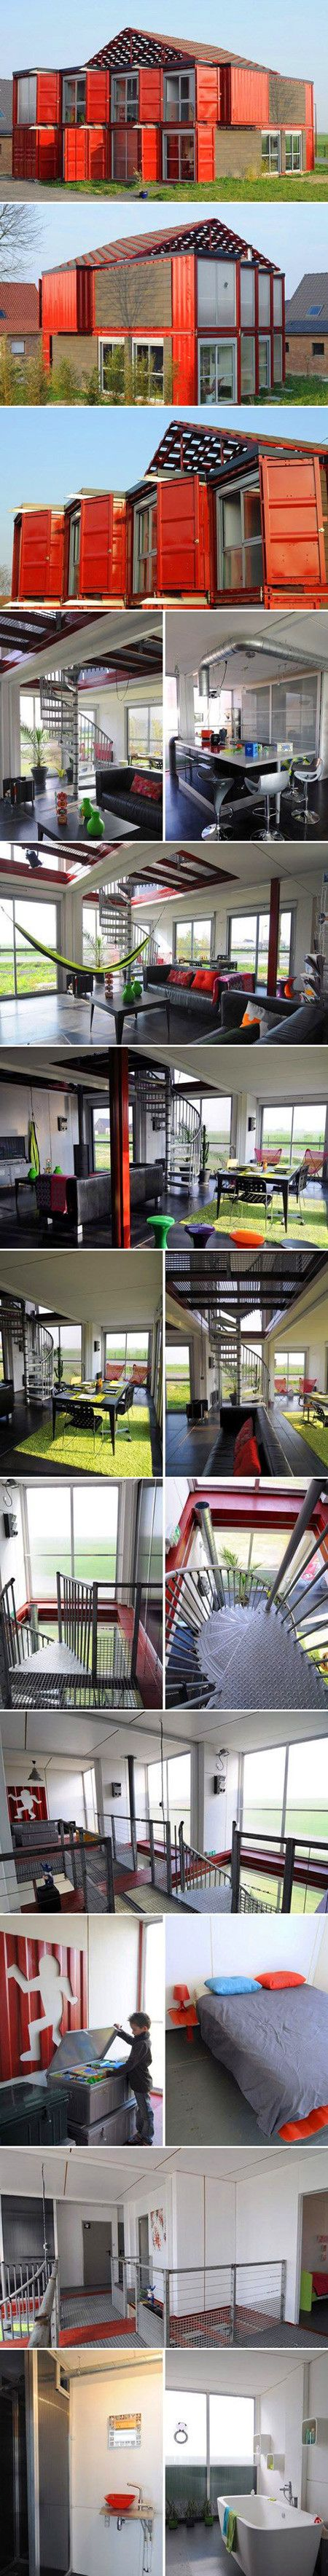 We've covered shipping container homes before, but this one definitely takes the cake in terms of design an aesthetics. As you can see, rather than just have shipping containers stacked atop each other, this home put in lots of modern touches like a spiral staircase, floor-to-ceiling windows, and even tiled floors.